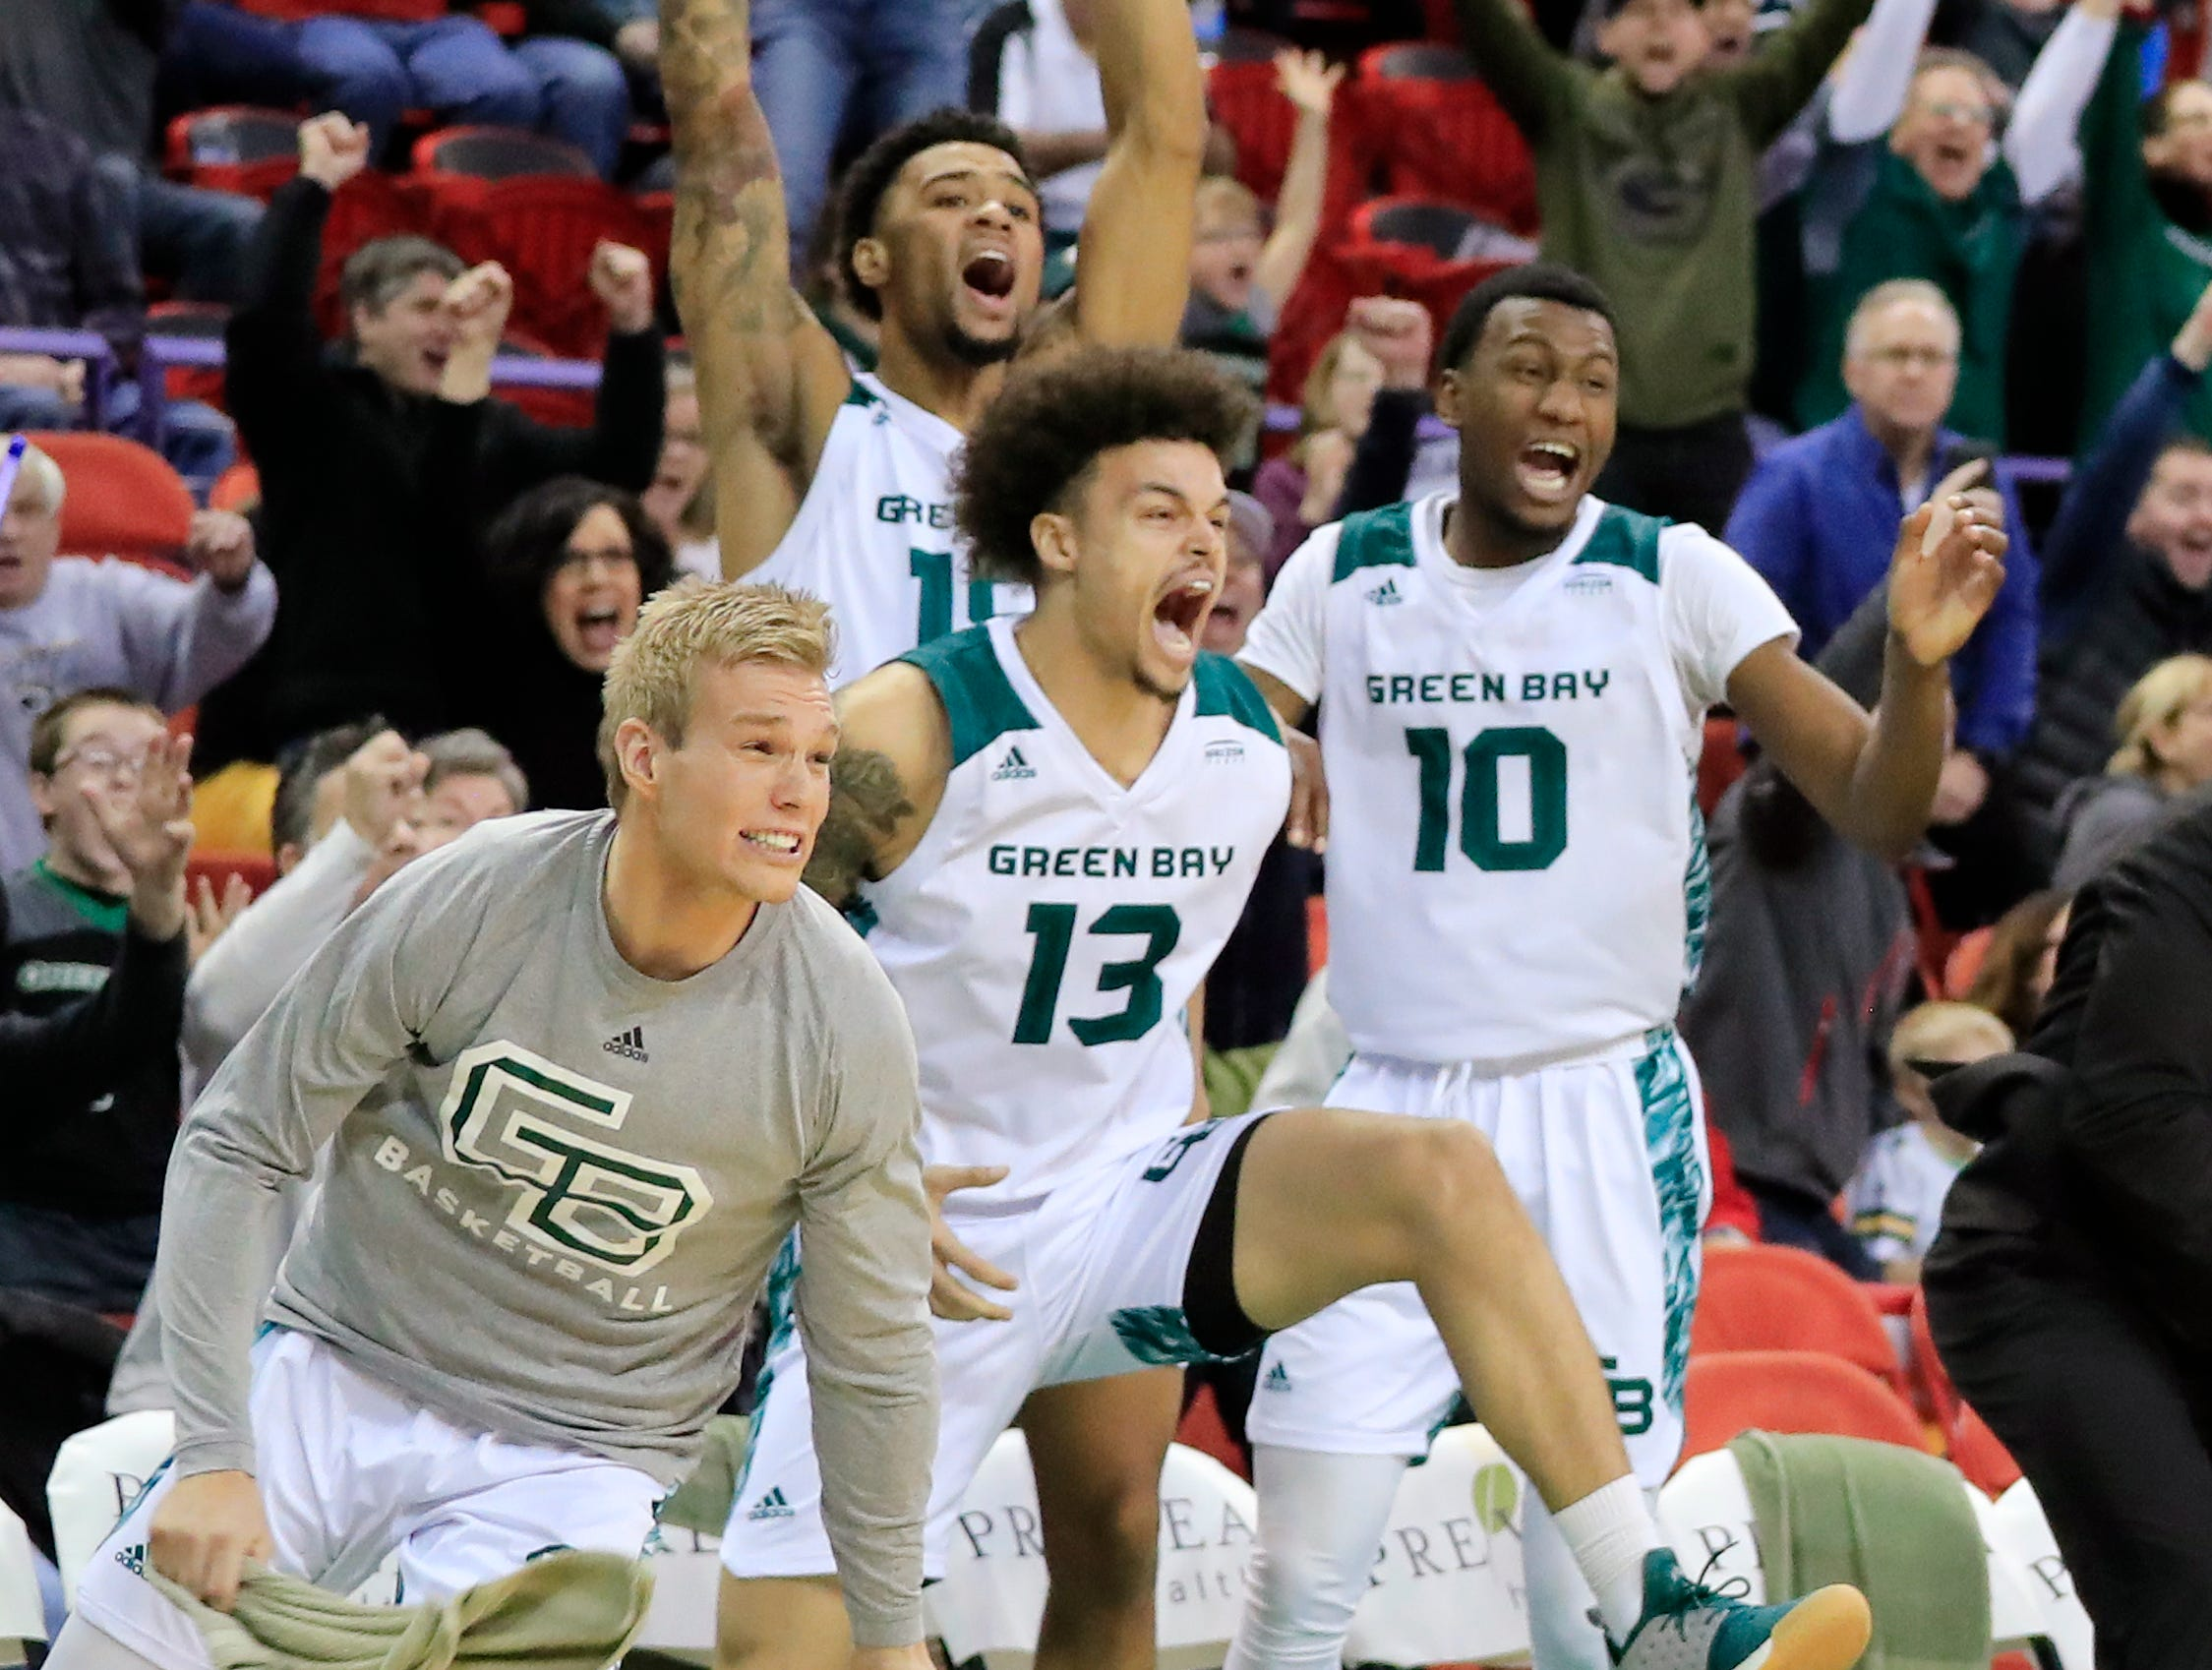 Green Bay Phoenix guard Trevian Bell (13) celebrates as the Phoenix win at the buzzer against the Cleveland State Vikings in a Horizon League basketball game at the Resch Center on Saturday, January 5, 2019 in Green Bay, Wis.